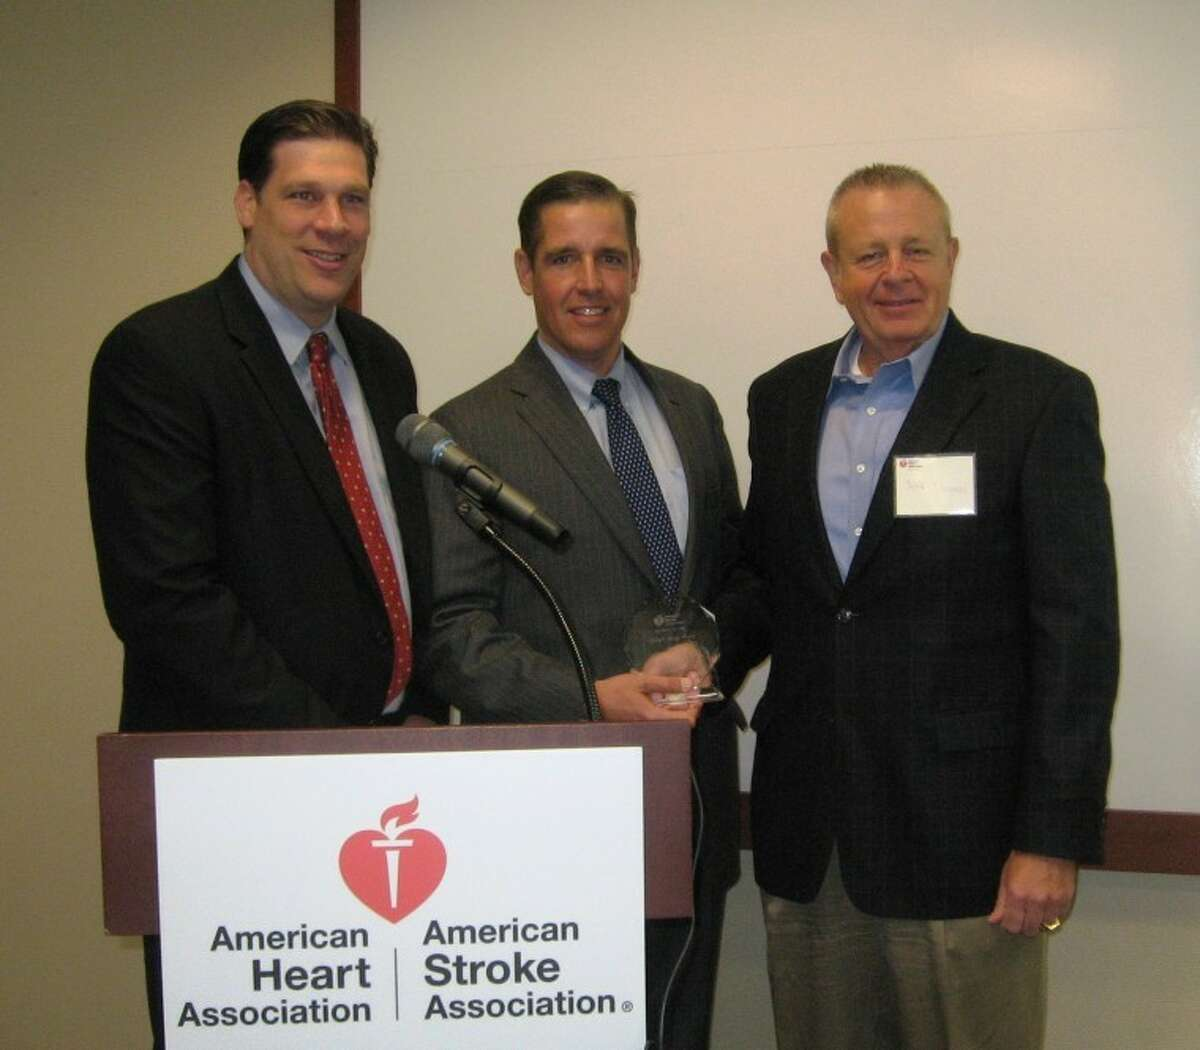 Gregory Plage, American Heart Association executive director, and Matt Fair, regional sales director of First Niagara Risk Management, present the AHA's 2012 Lifestyle Change Award to Jeffrey Thomas, president of corporate operations at Connolly, Inc. in Wilton.